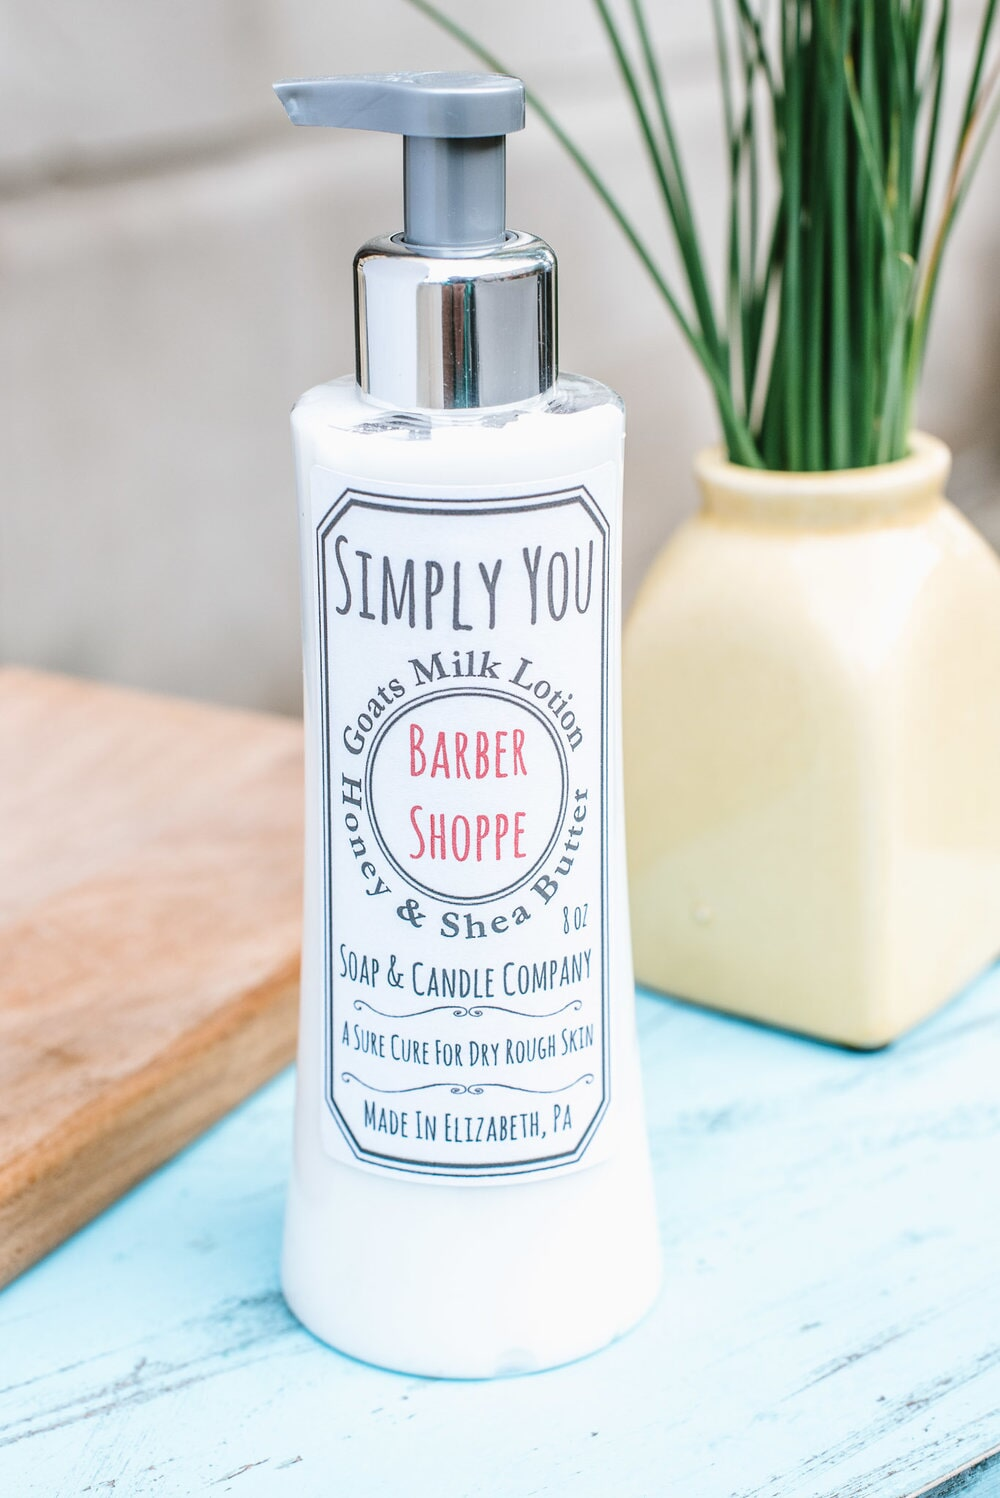 Simply You Soap & Candle Co. image 8